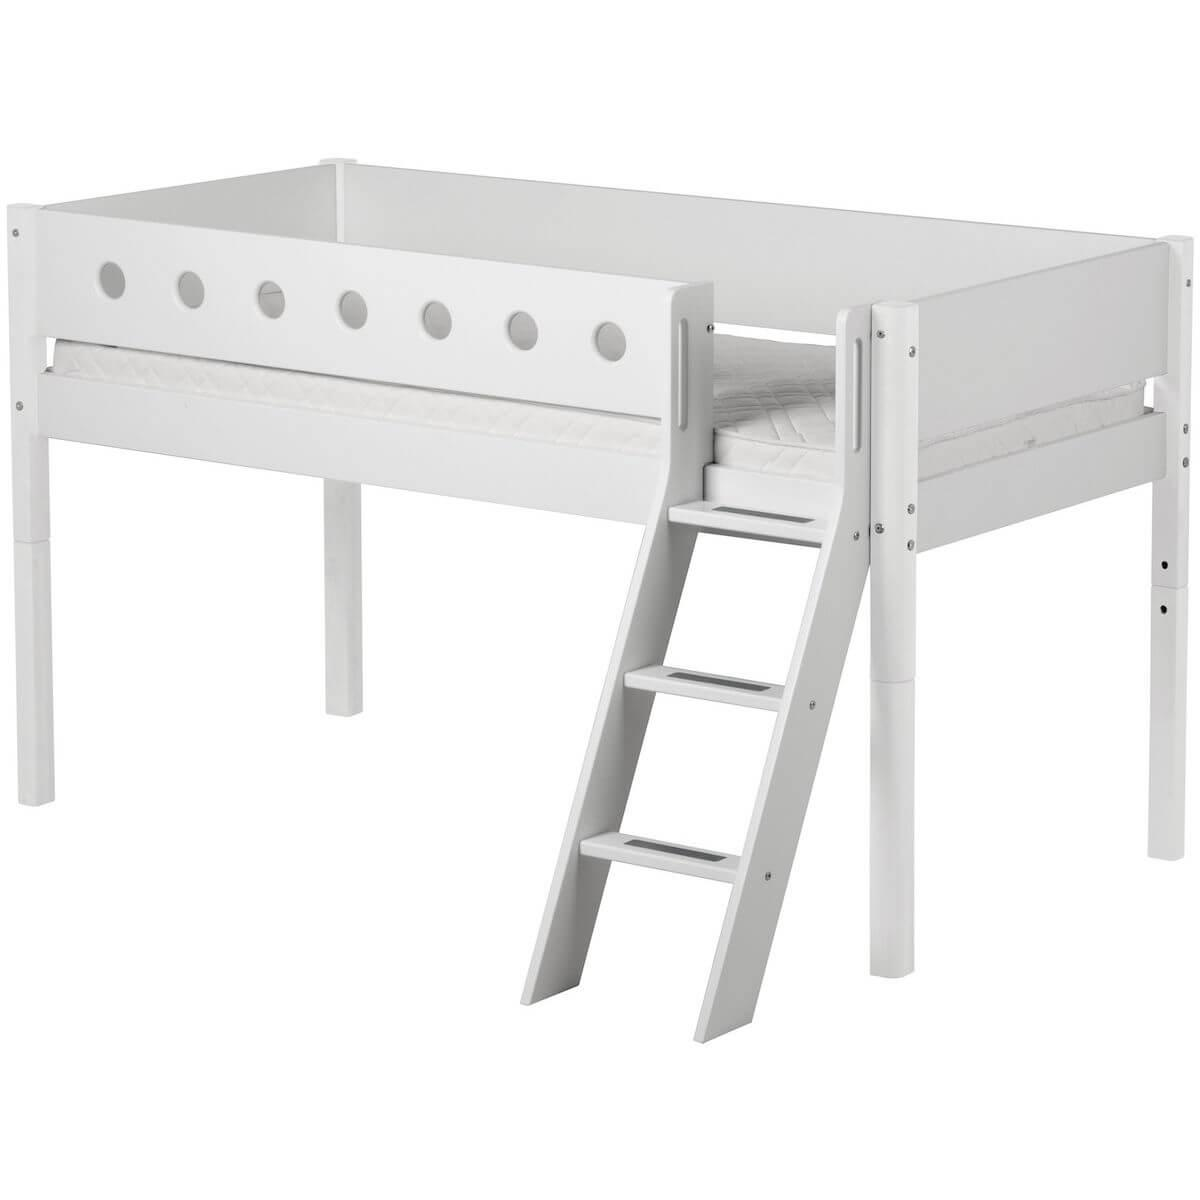 Cama media alta 90x200 WHITE Flexa escalera inclinada barrera y patas blancas